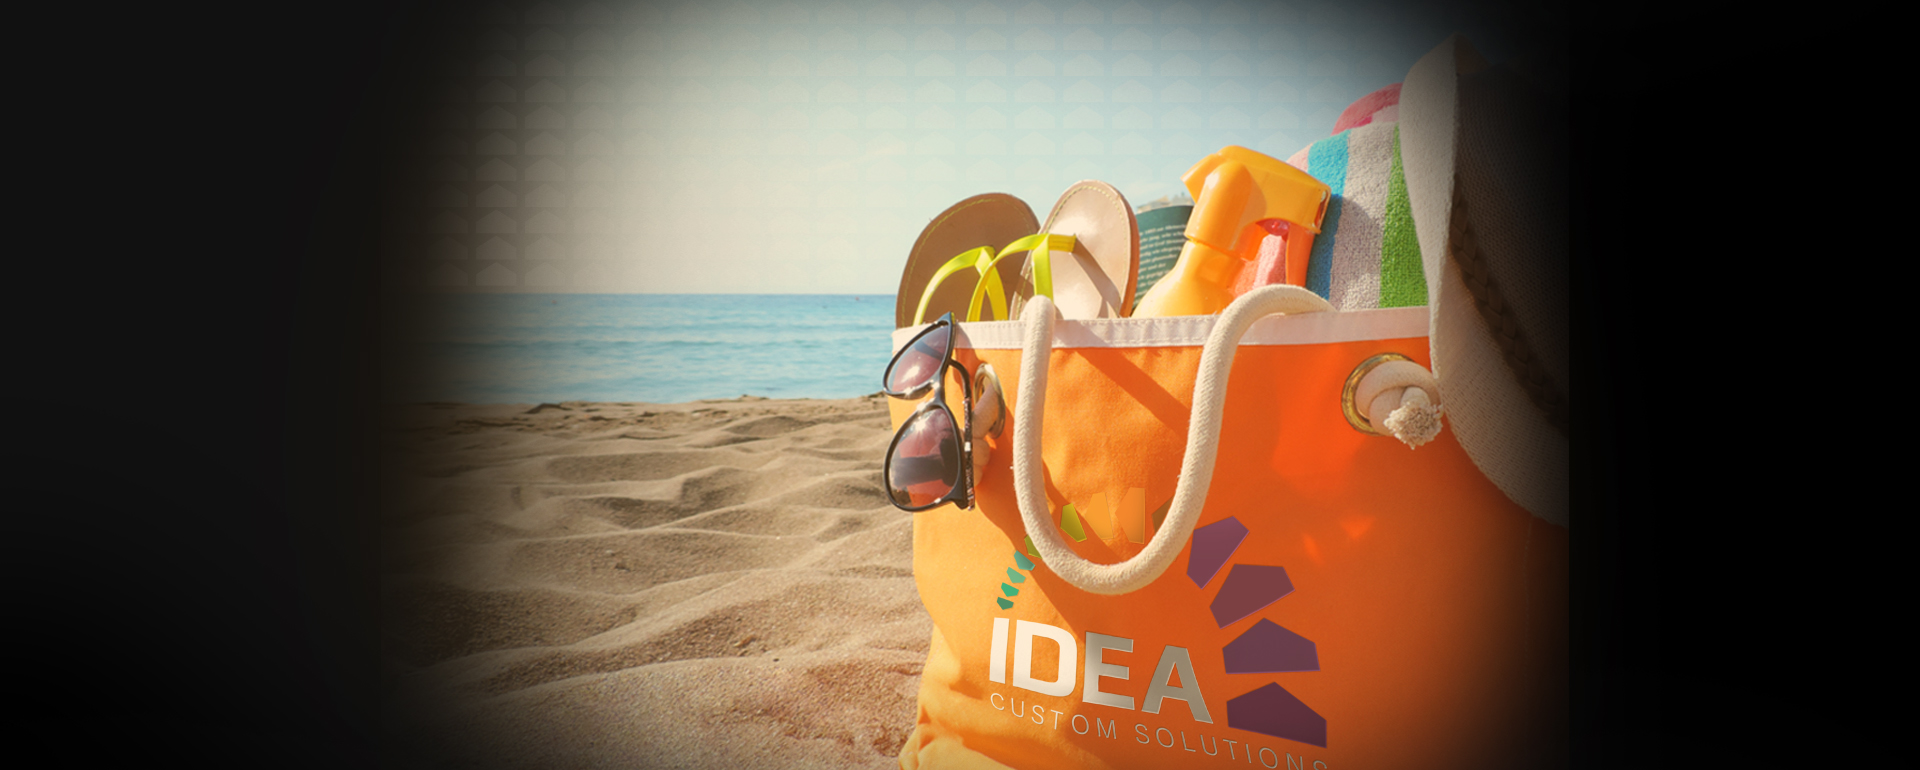 Idea Custom Beach Bag Graphic